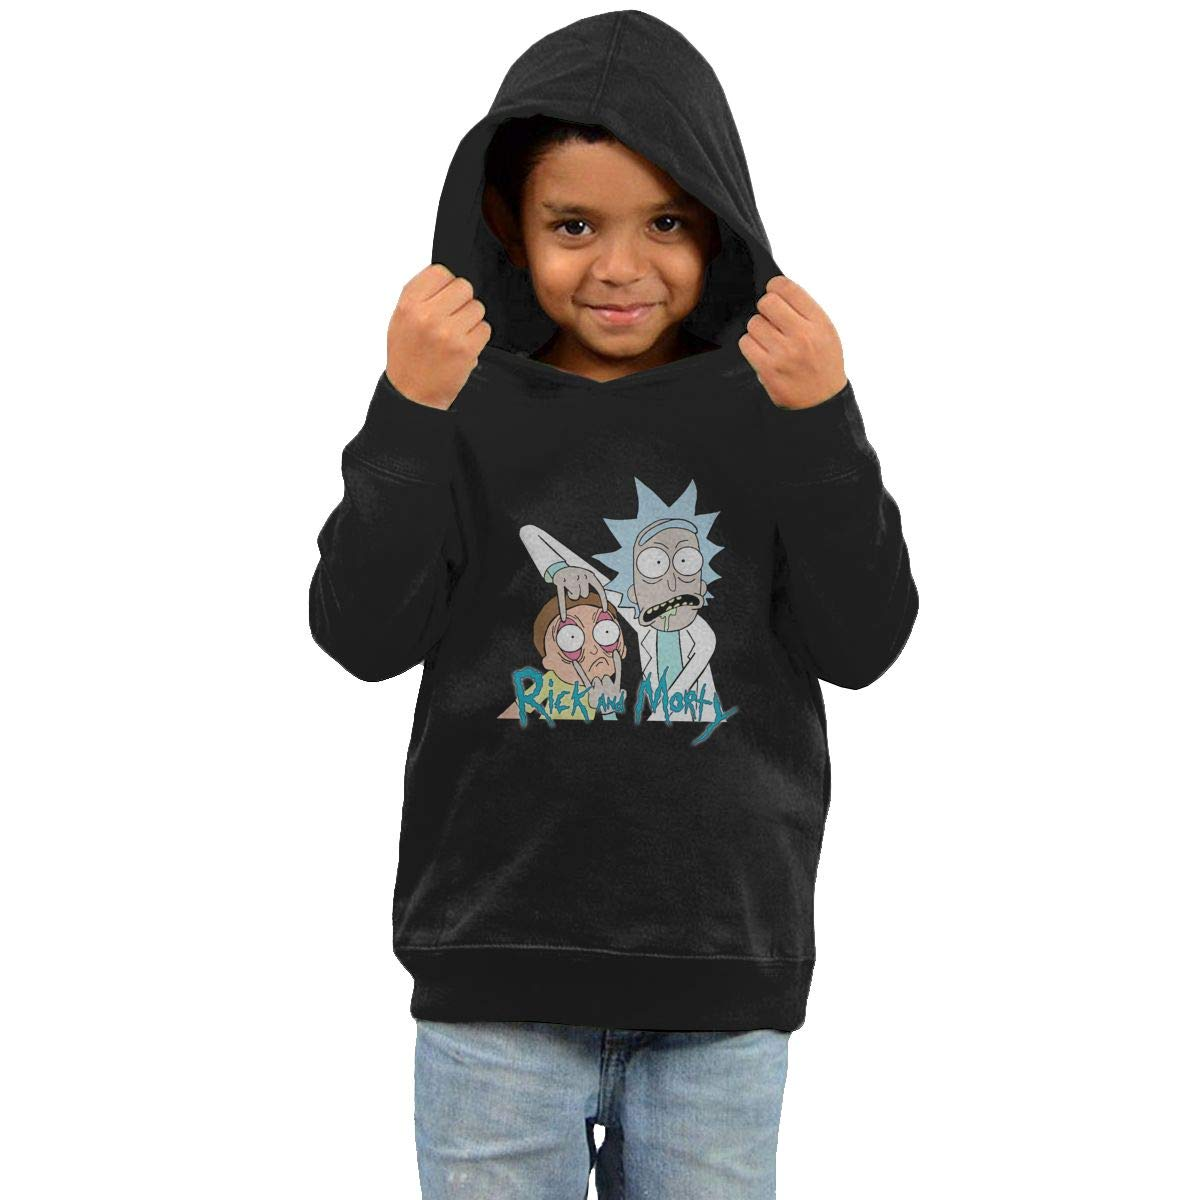 Stacy J. Payne Boys Rick and Morty Lovely Fleeces40 Black